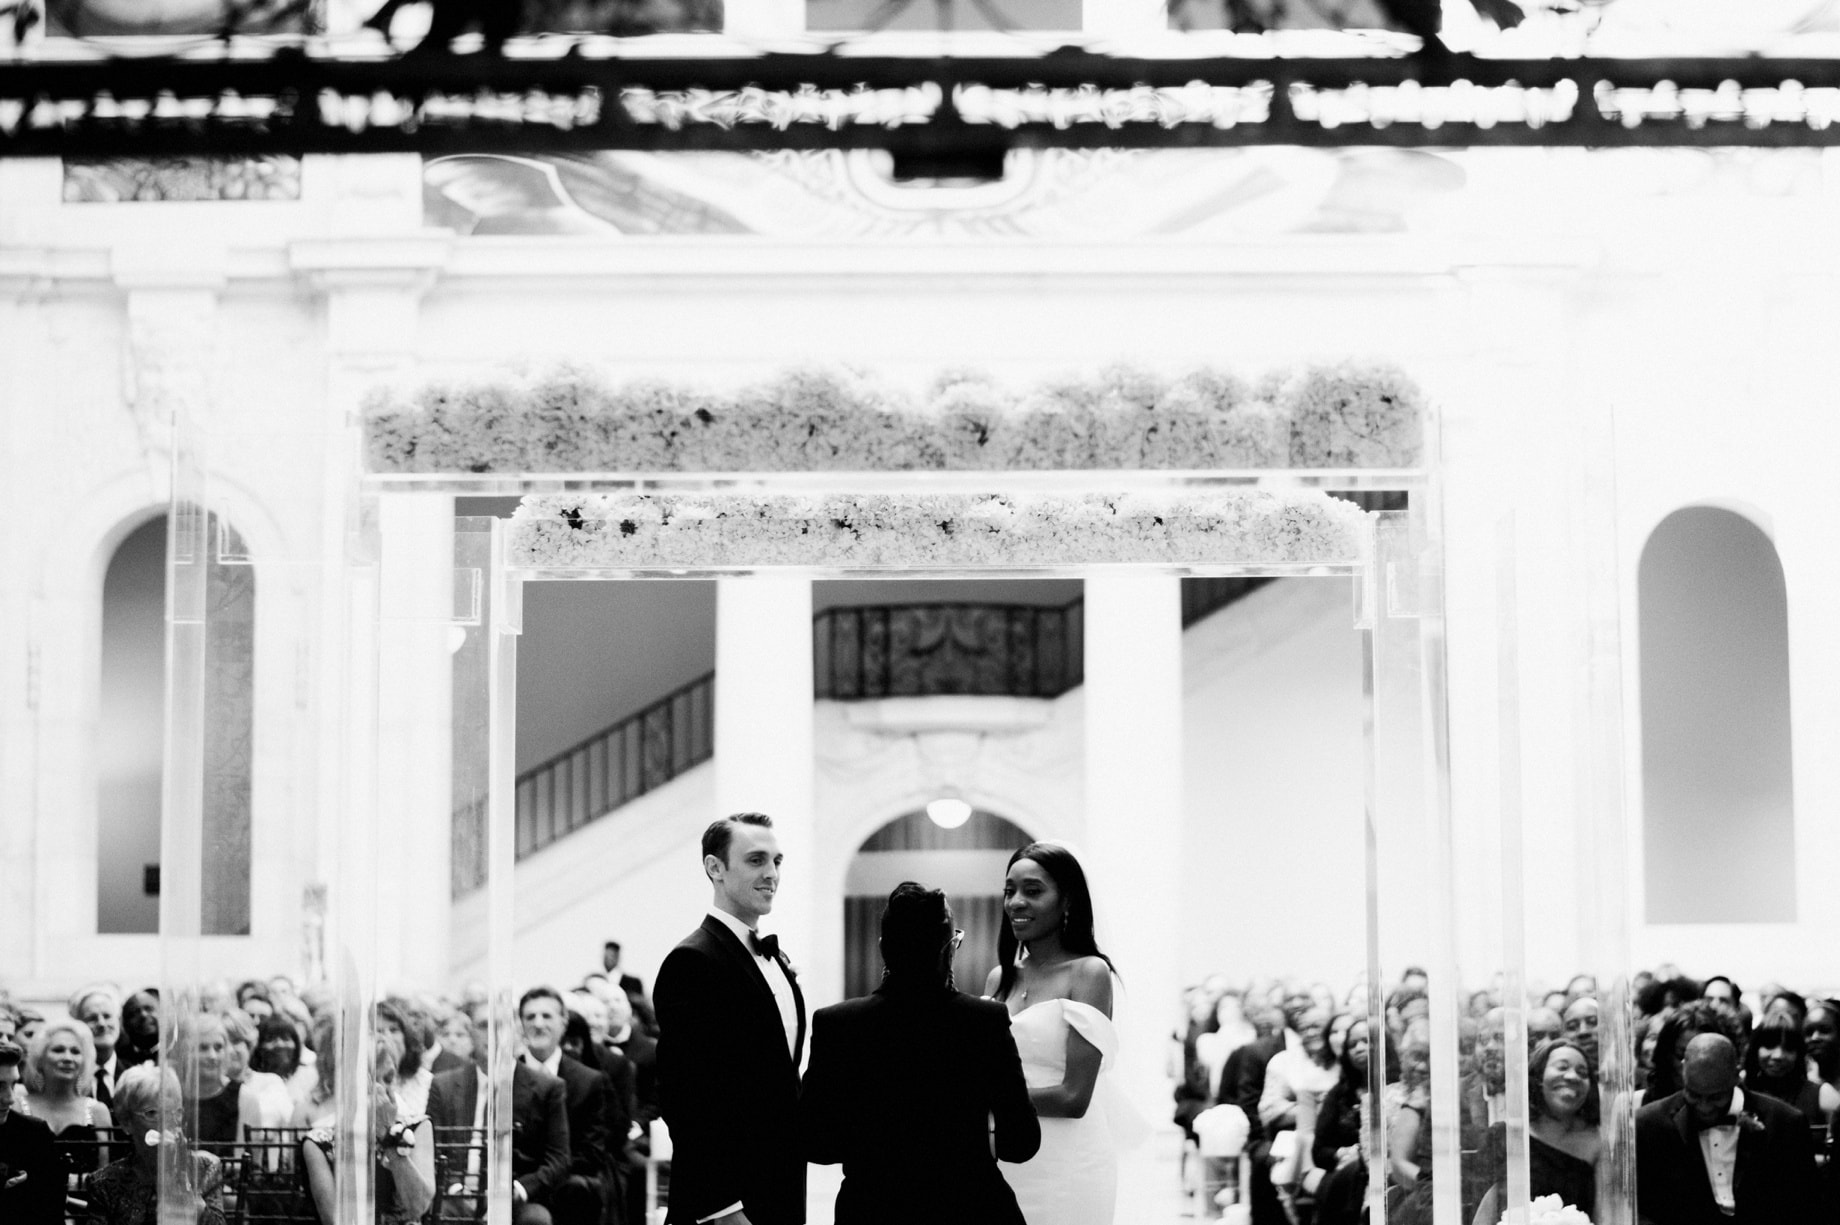 detroit wedding photographer Heather Jowett